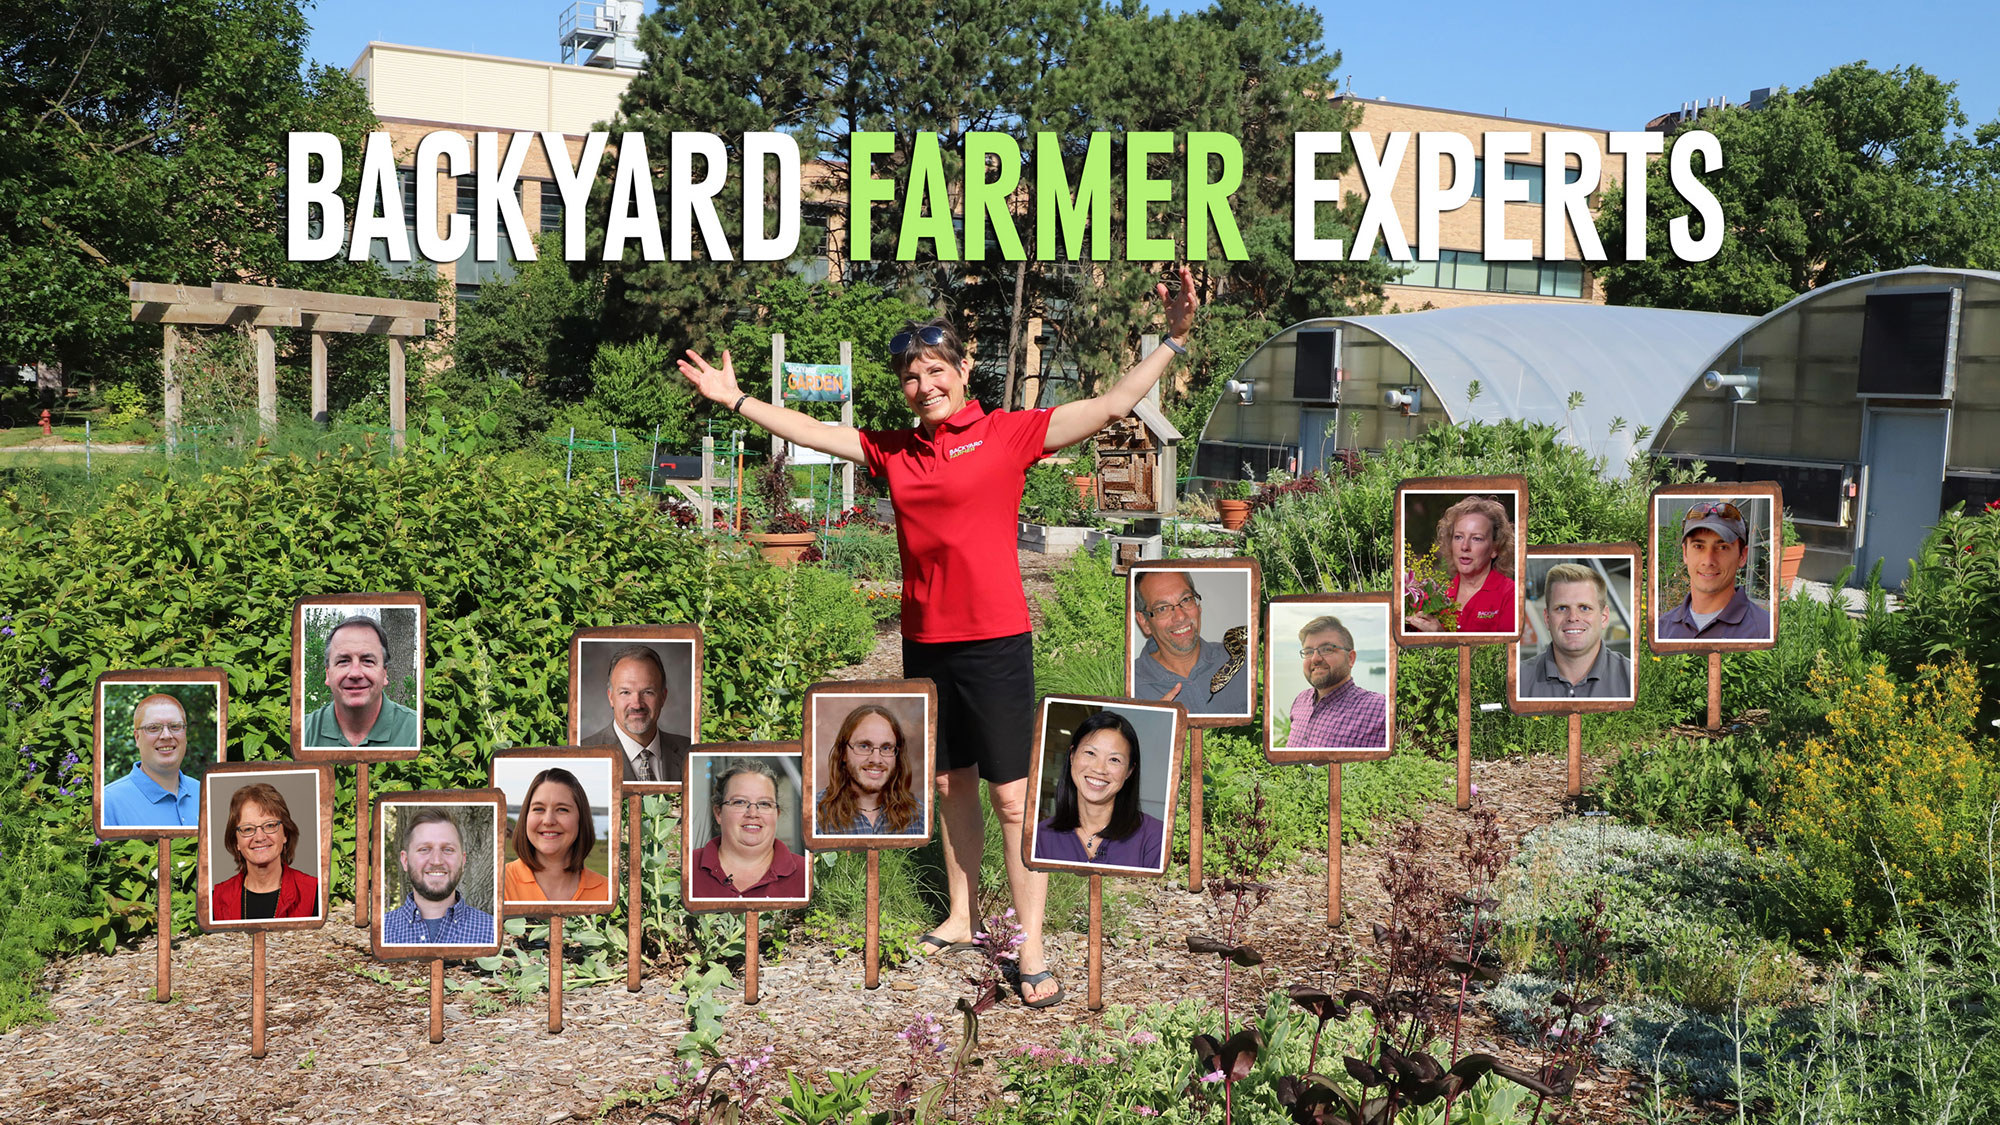 The Backyard Farmer panel will hold a Q&A session with a live audience Sept. 1 beginning at 5 p.m. in the Backyard Farmer Garden on the University of Nebraska–Lincoln East Campus.